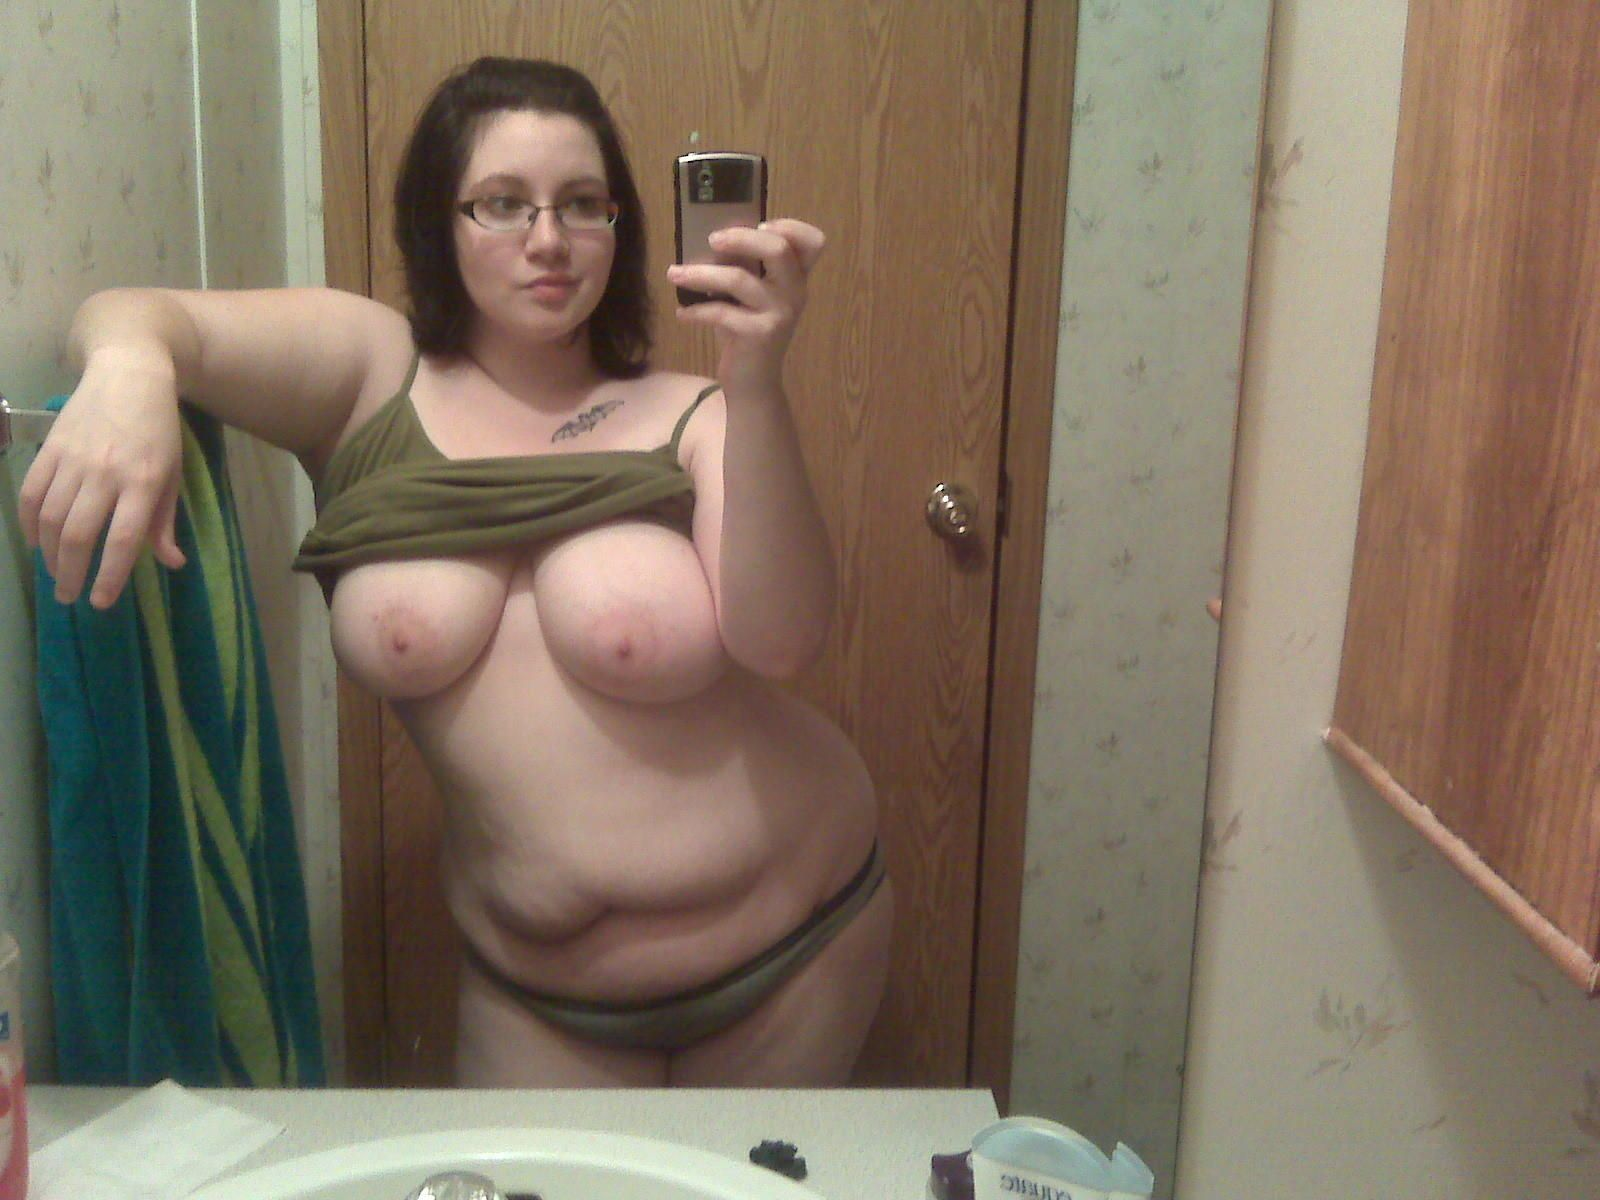 Fat nude mirror pics not very